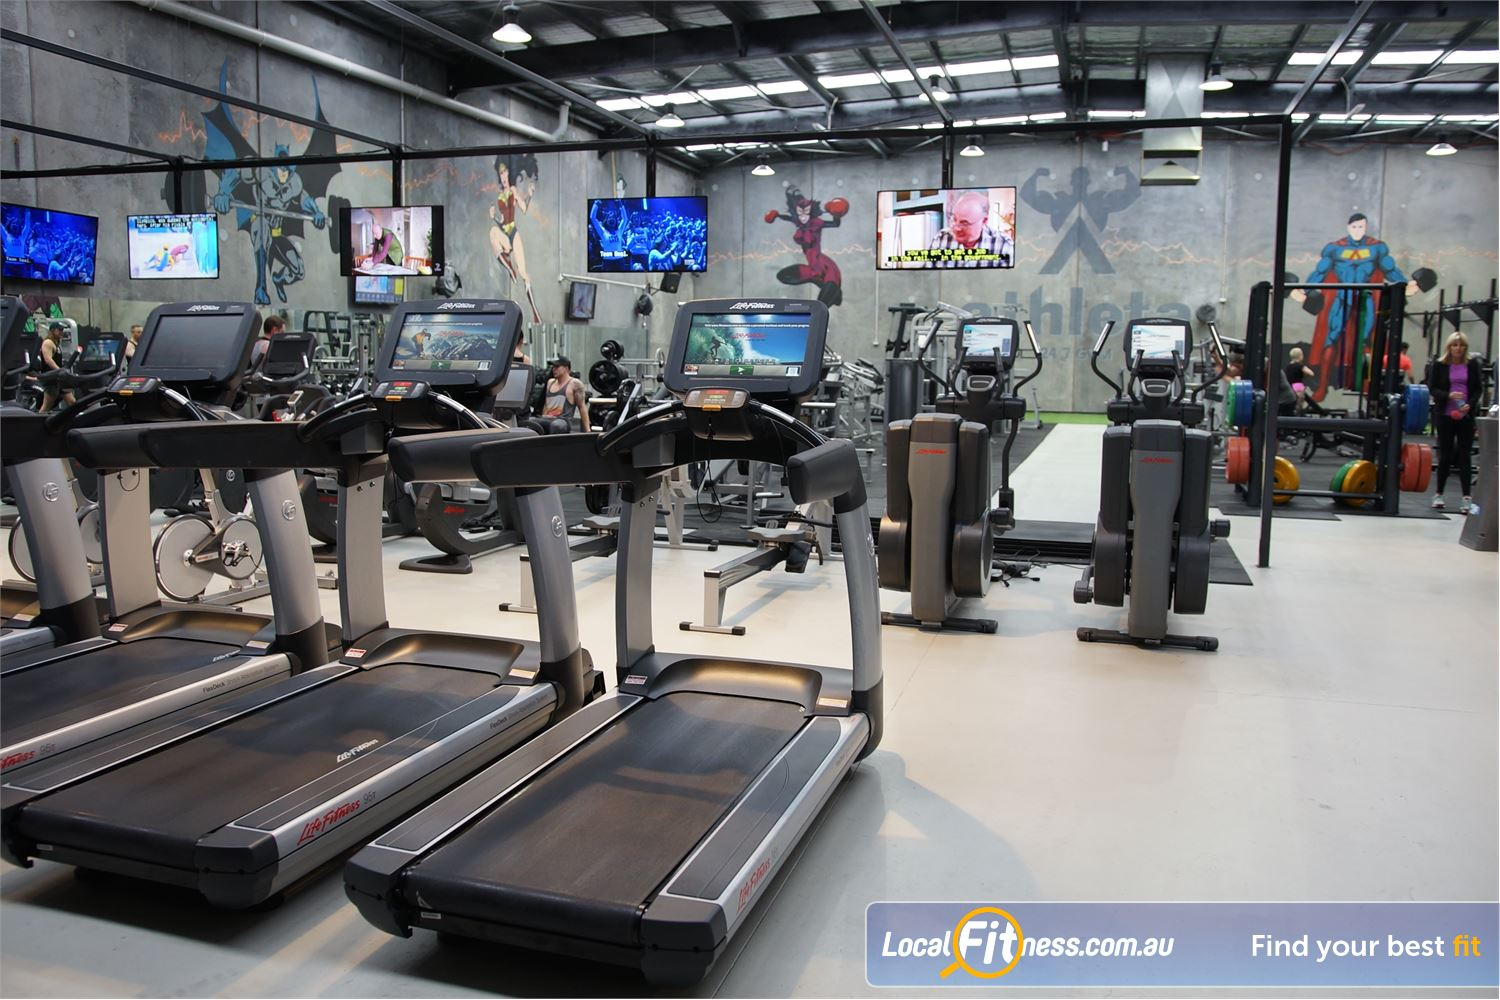 Athleta Gym Williamstown North Tune into your favourite shows in our cardio theatre.